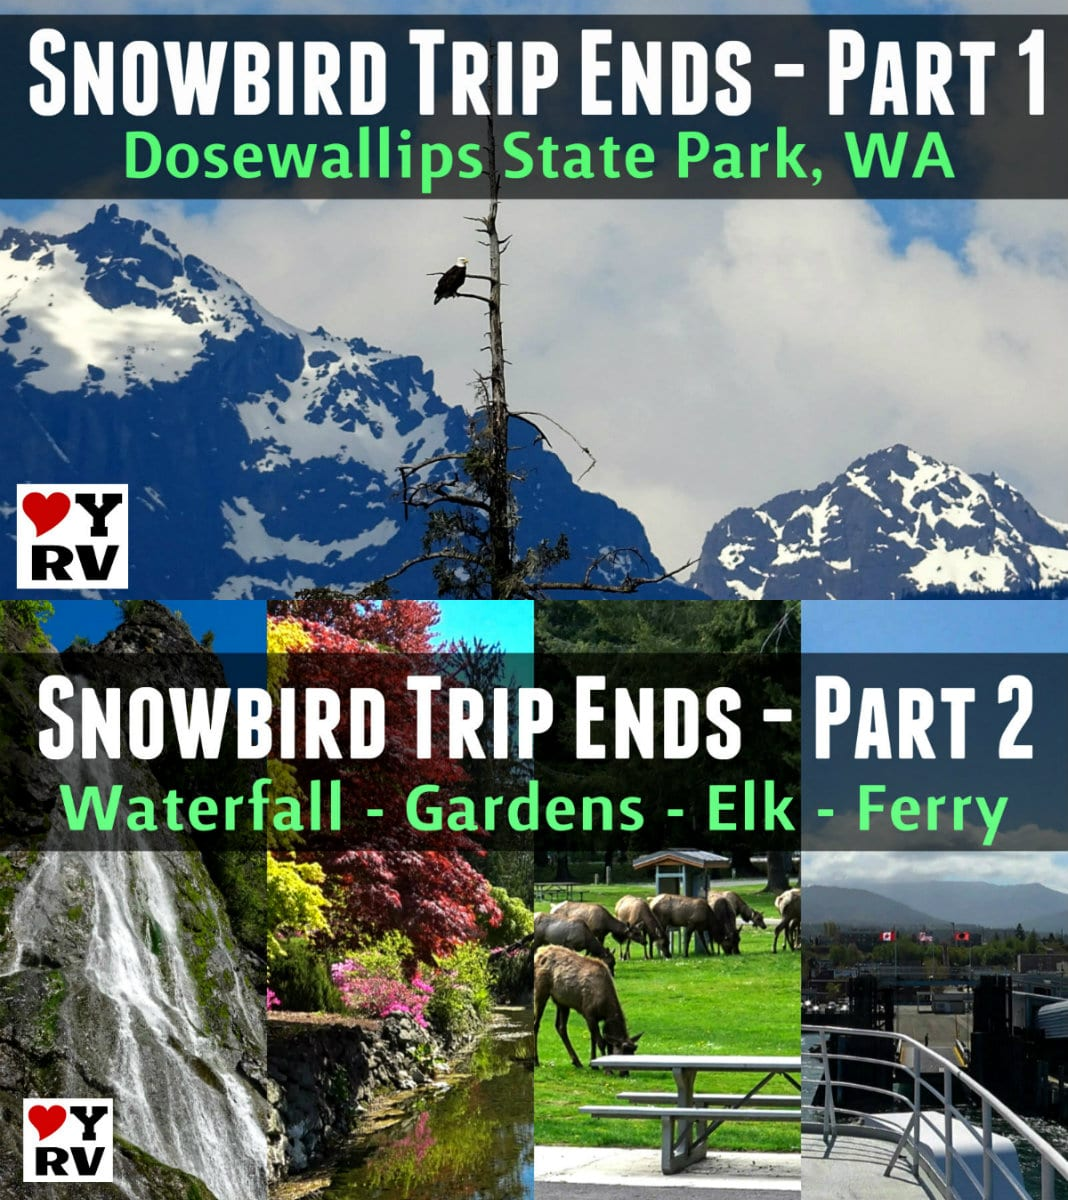 Last two videos from our 2018-19 RV snowbird trip adventures from Washington State - https://www.loveyourrv.com